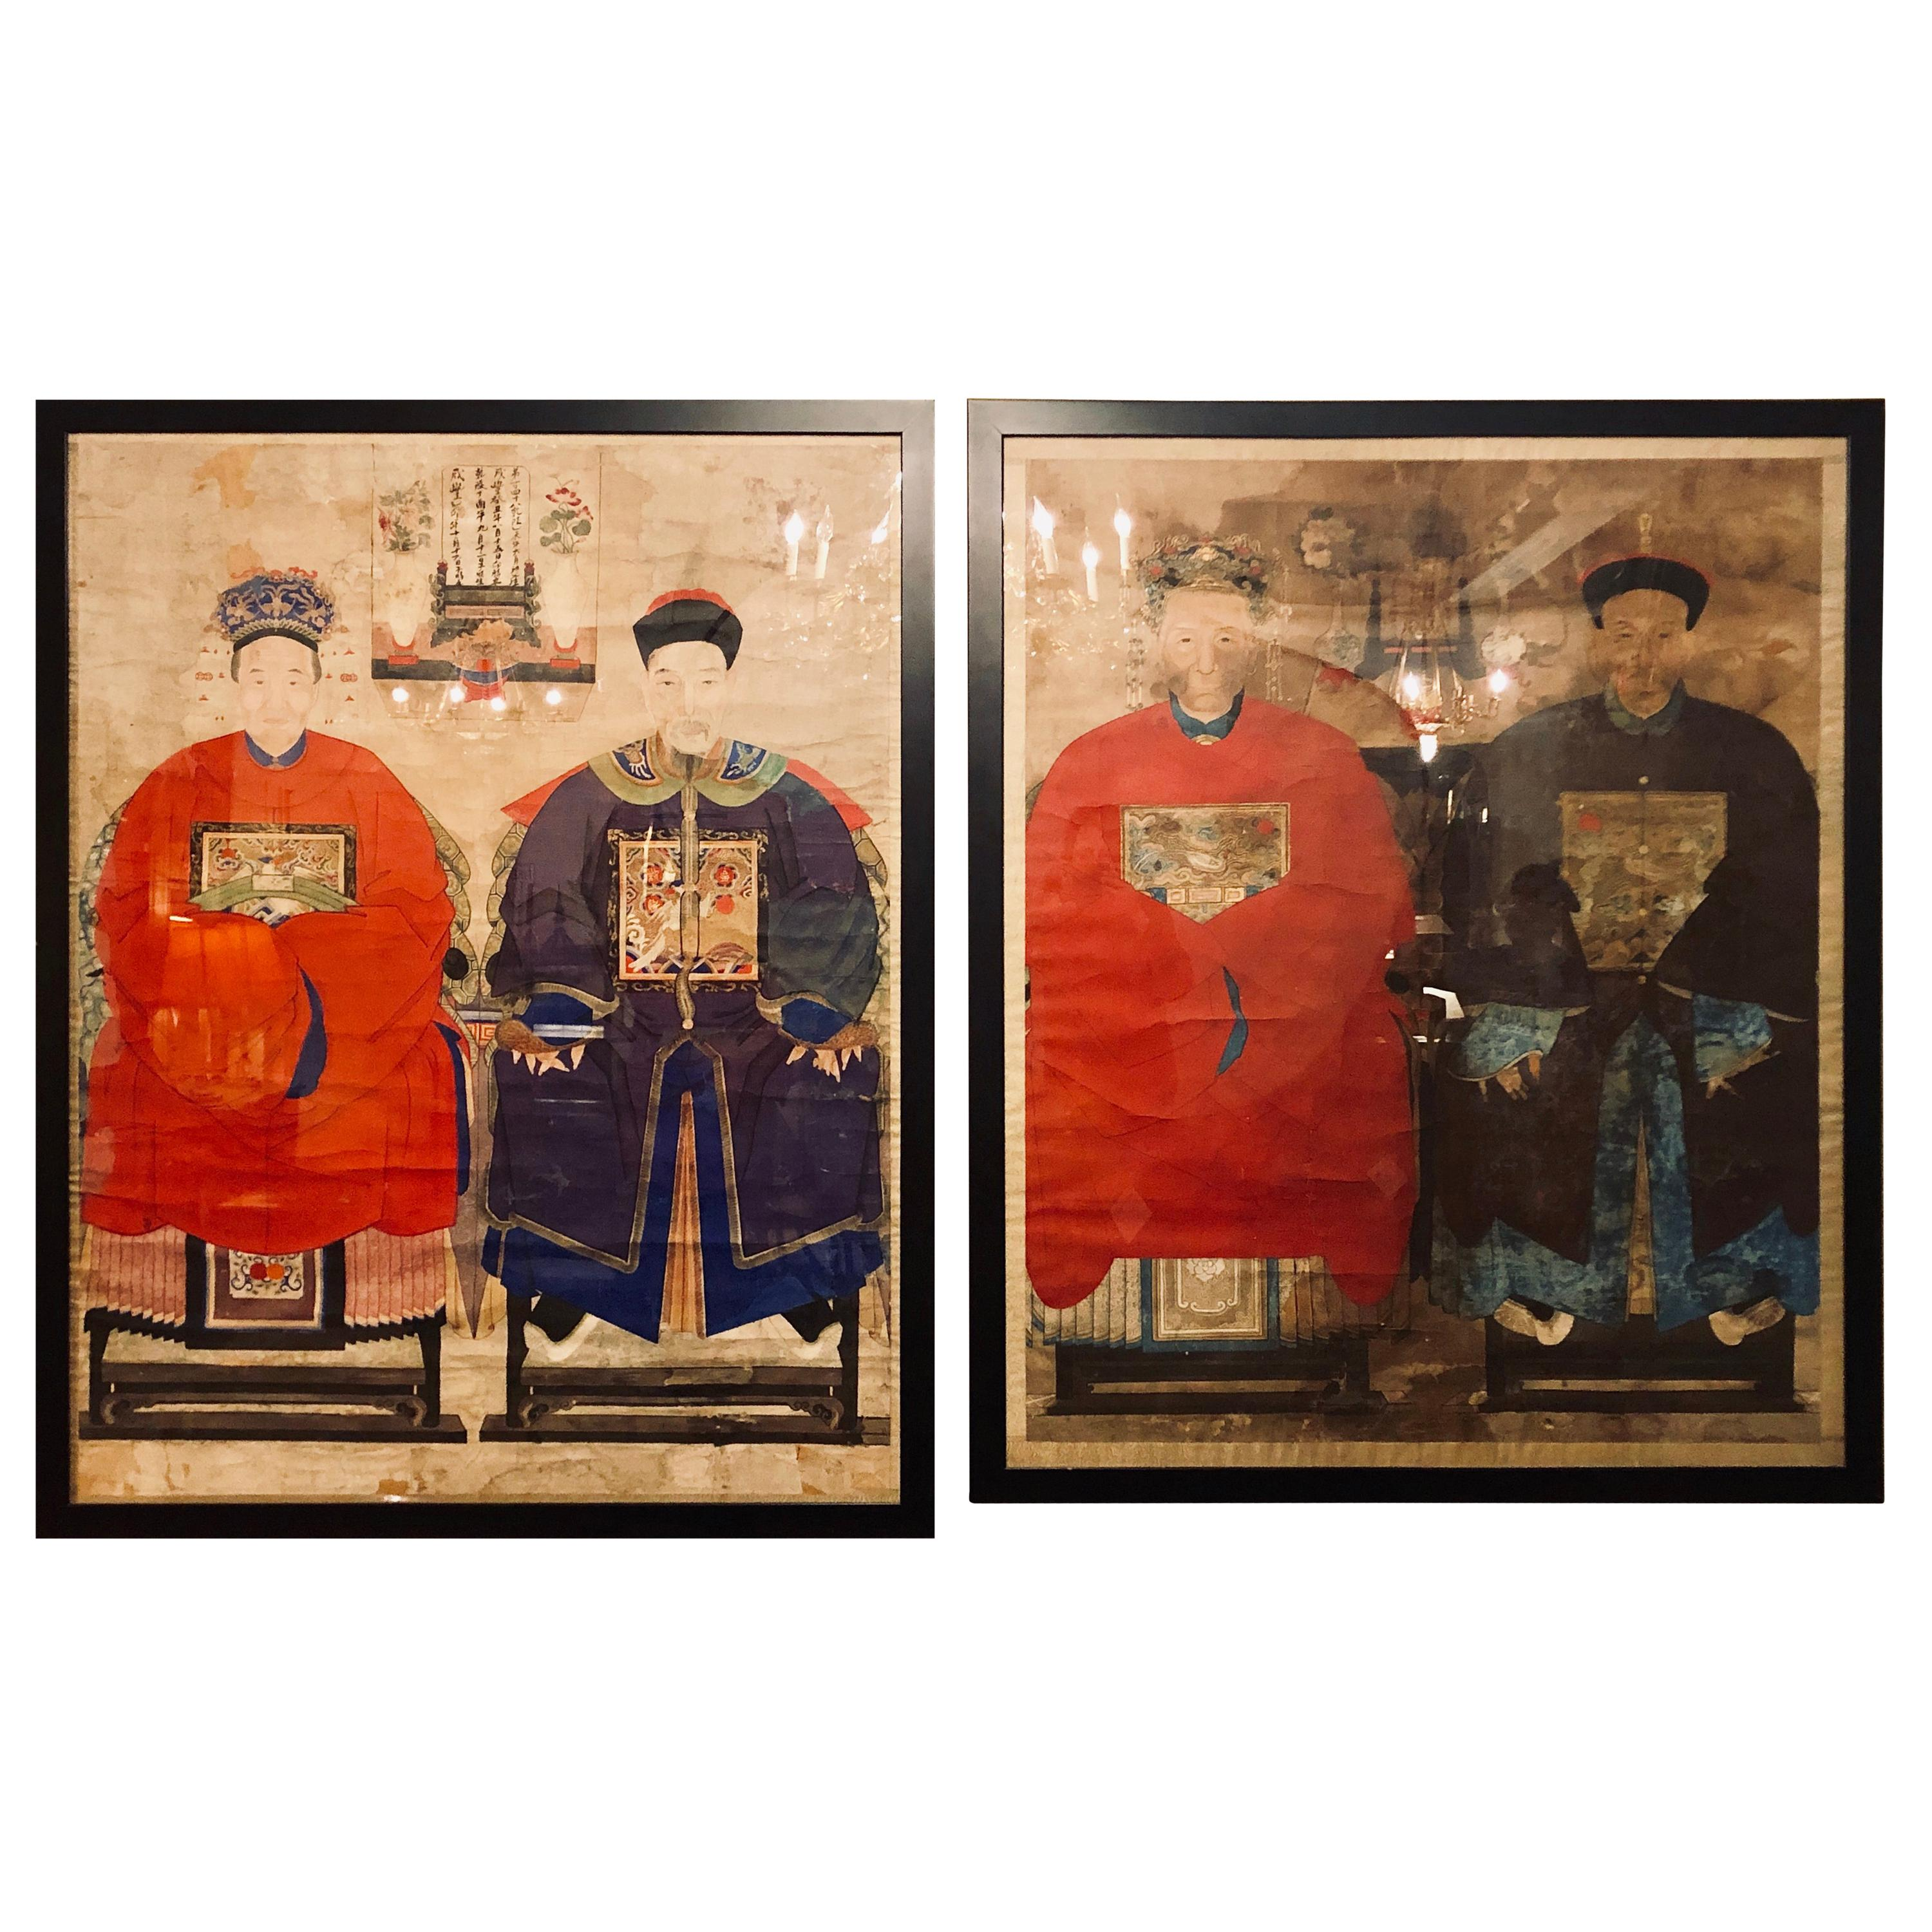 Pair of Monumental Ancient Ancestor Portraits / Chinese Paintings on Rice Paper